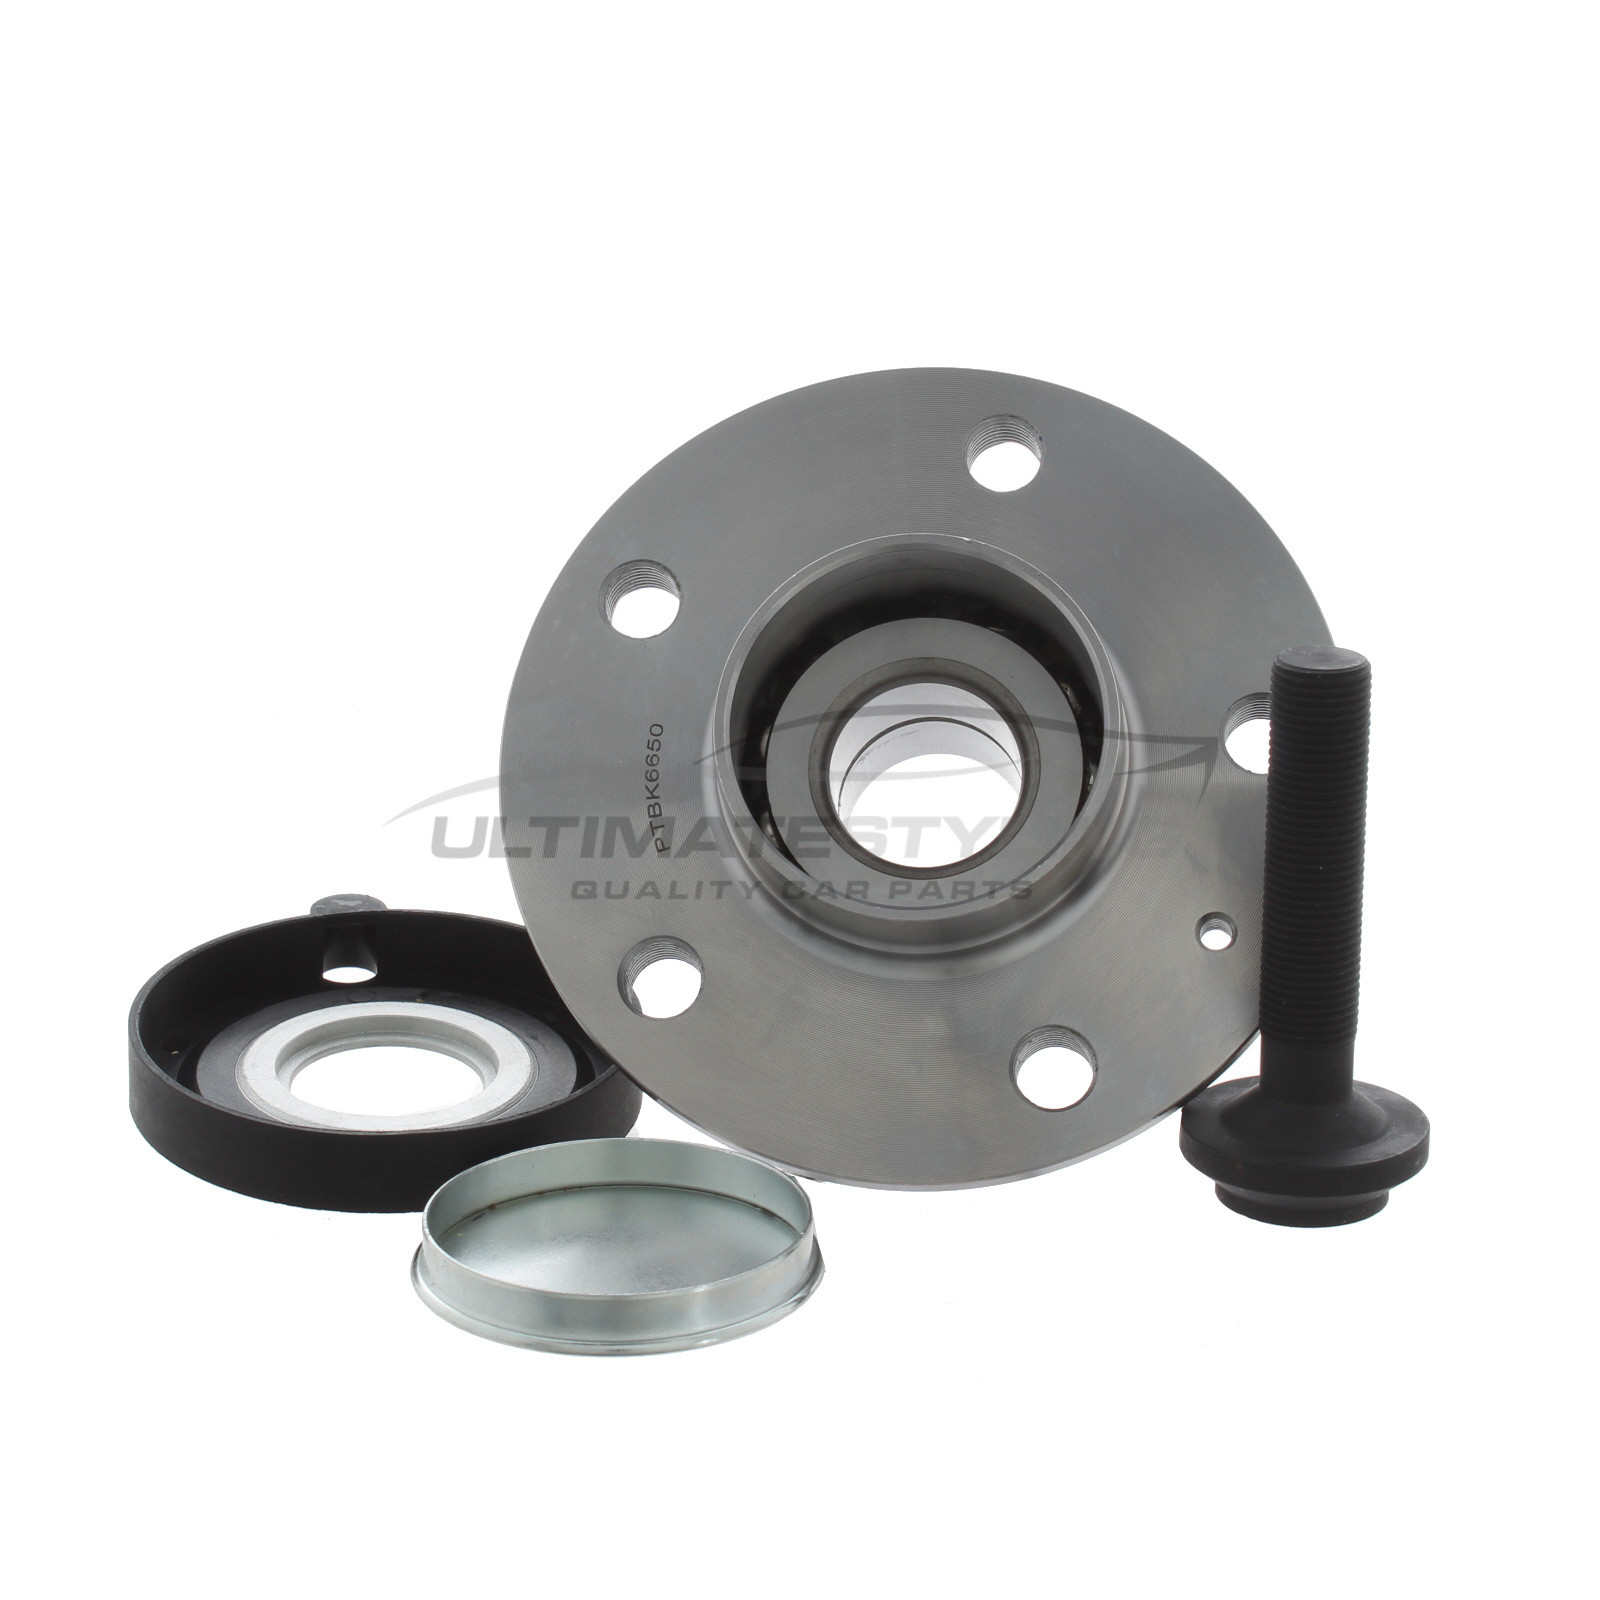 Rear Hub Bearing Kit for Audi A4